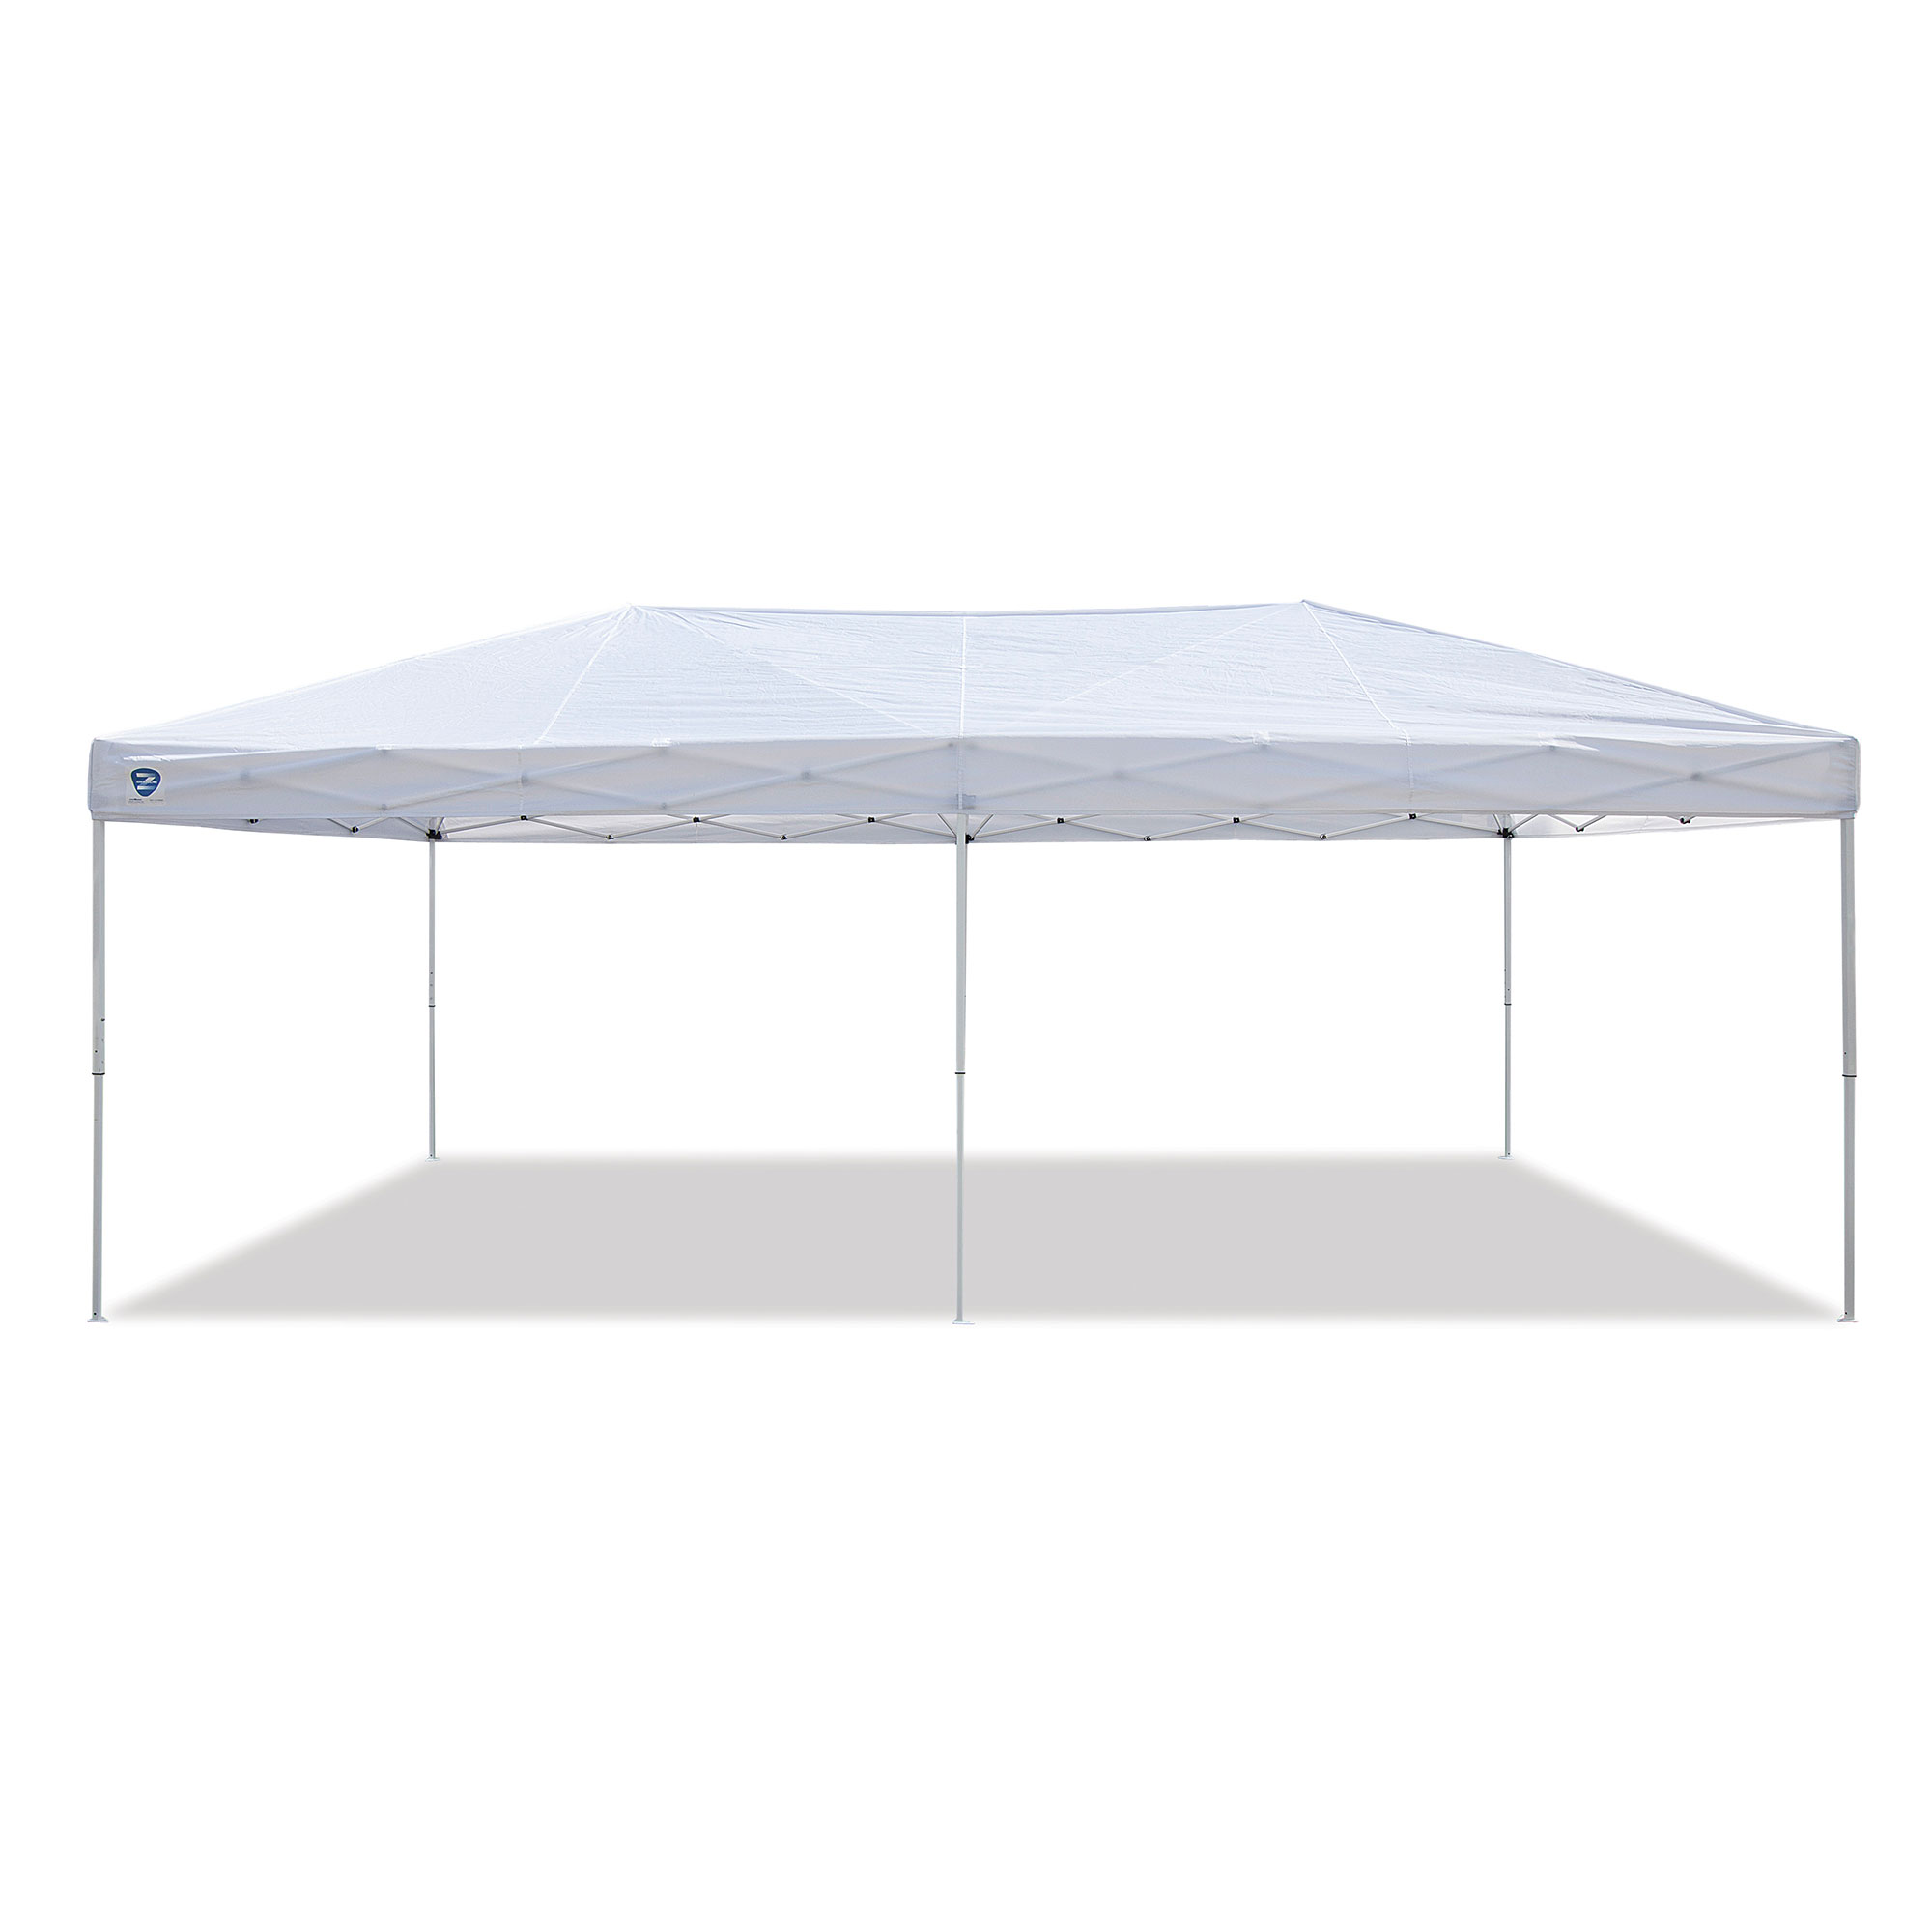 Z Shade 20 X 10 Foot Everest Instant Canopy Camping Outdoor Patio